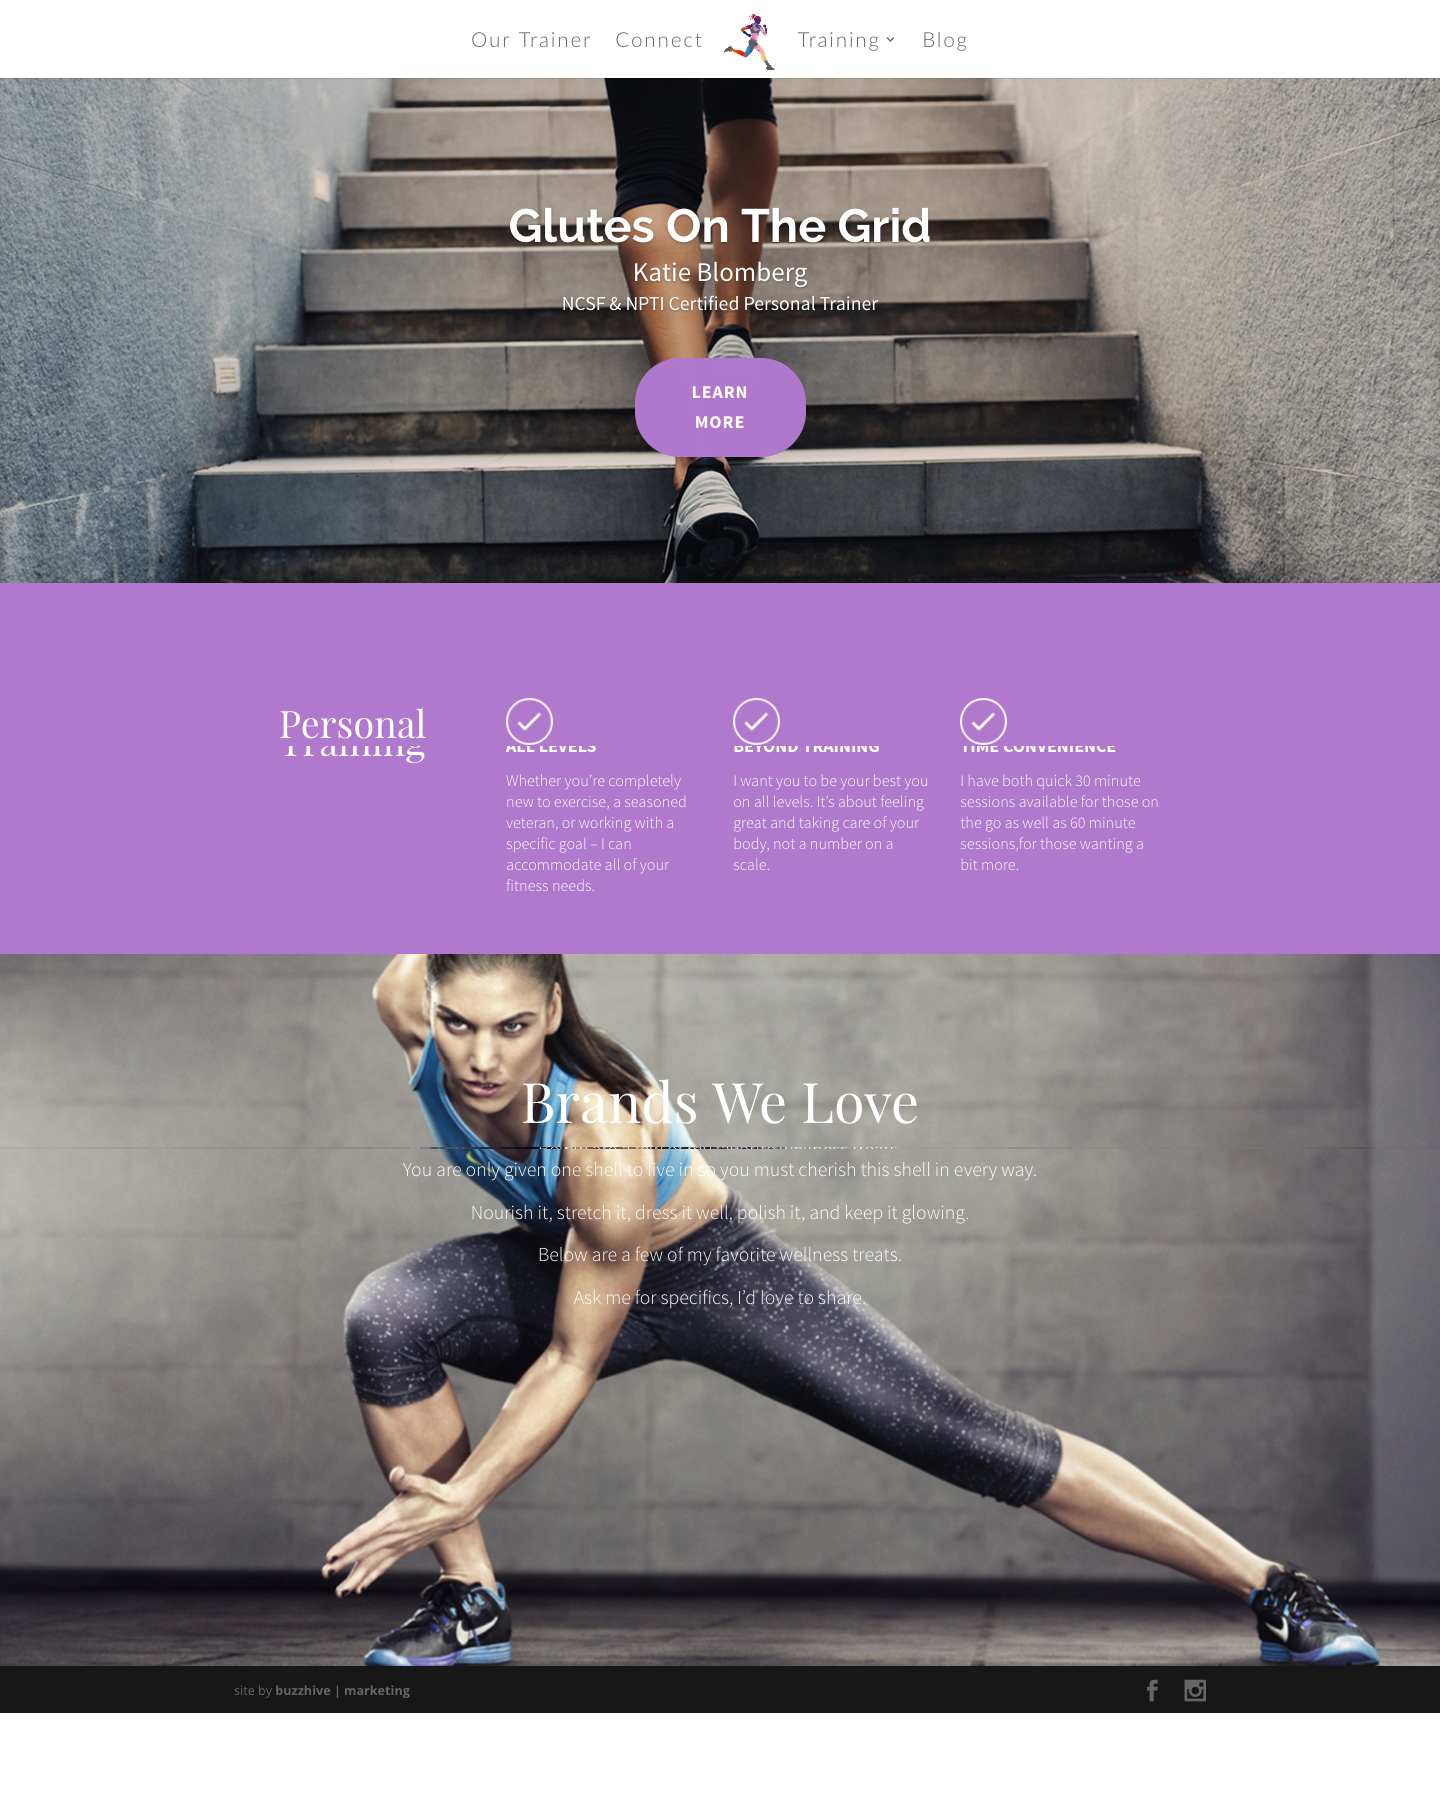 glutes-on-the-grid Web Design & Development